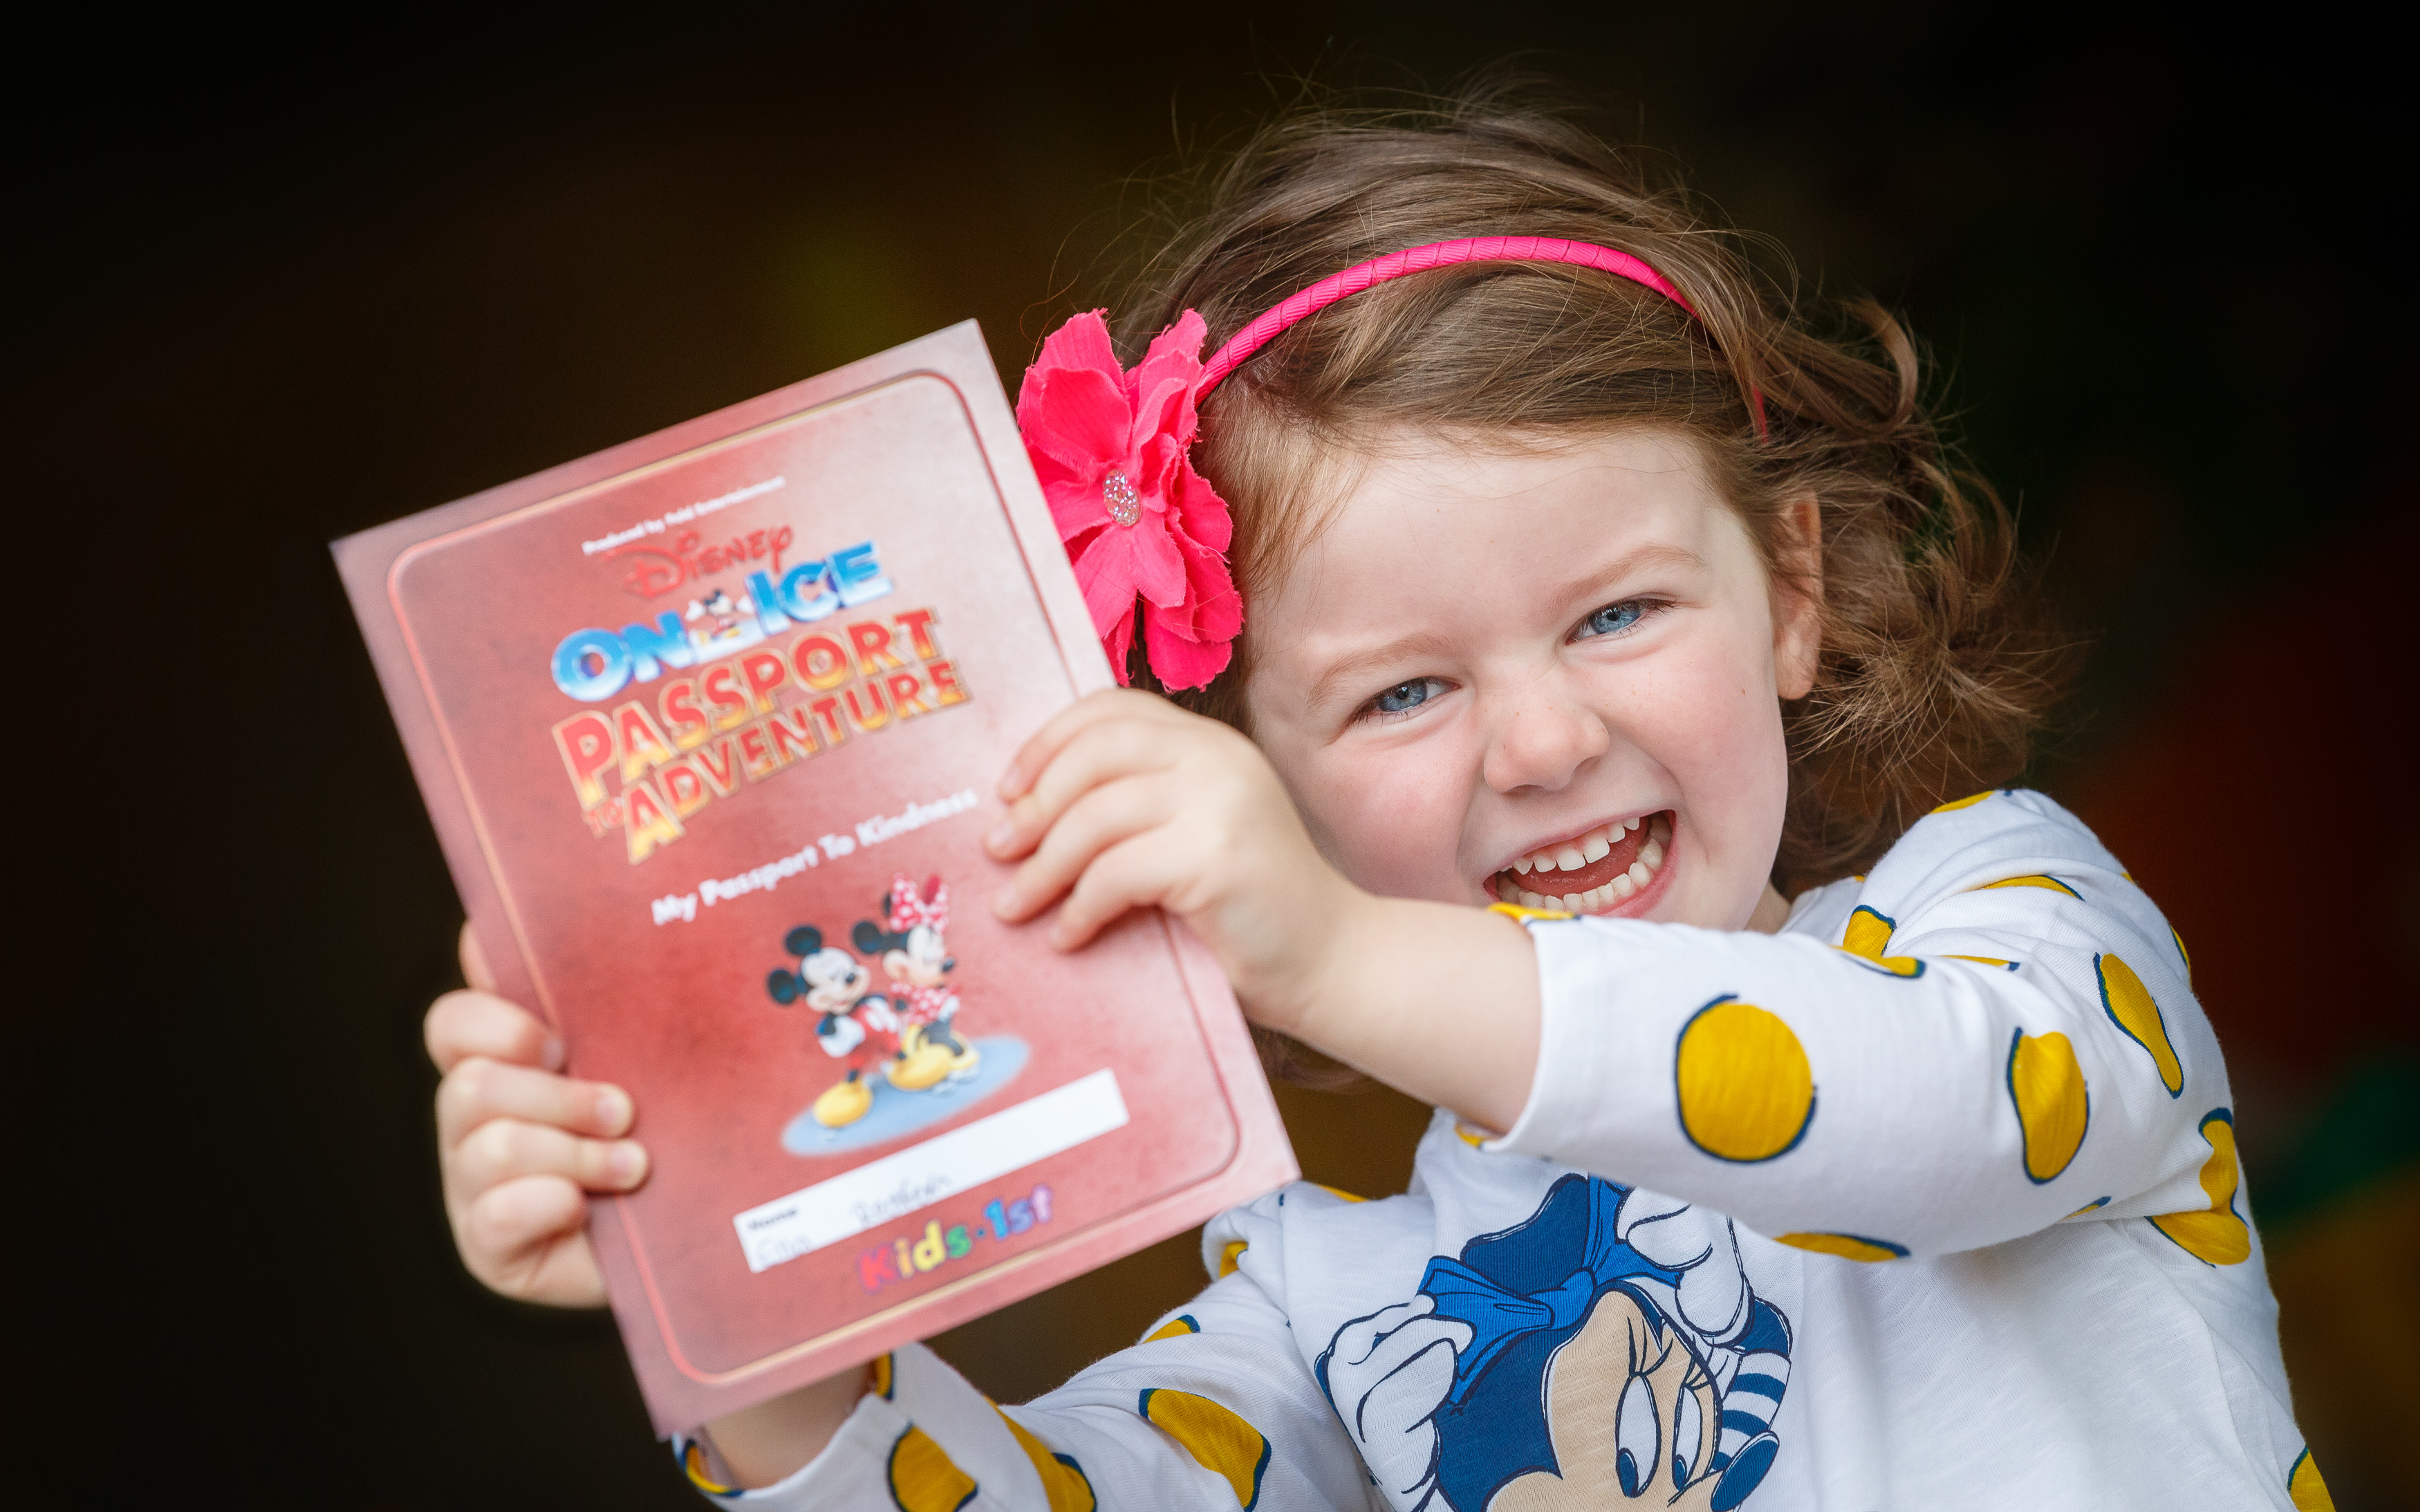 Disney On Ice and Kids 1st launch Passport to Kindness